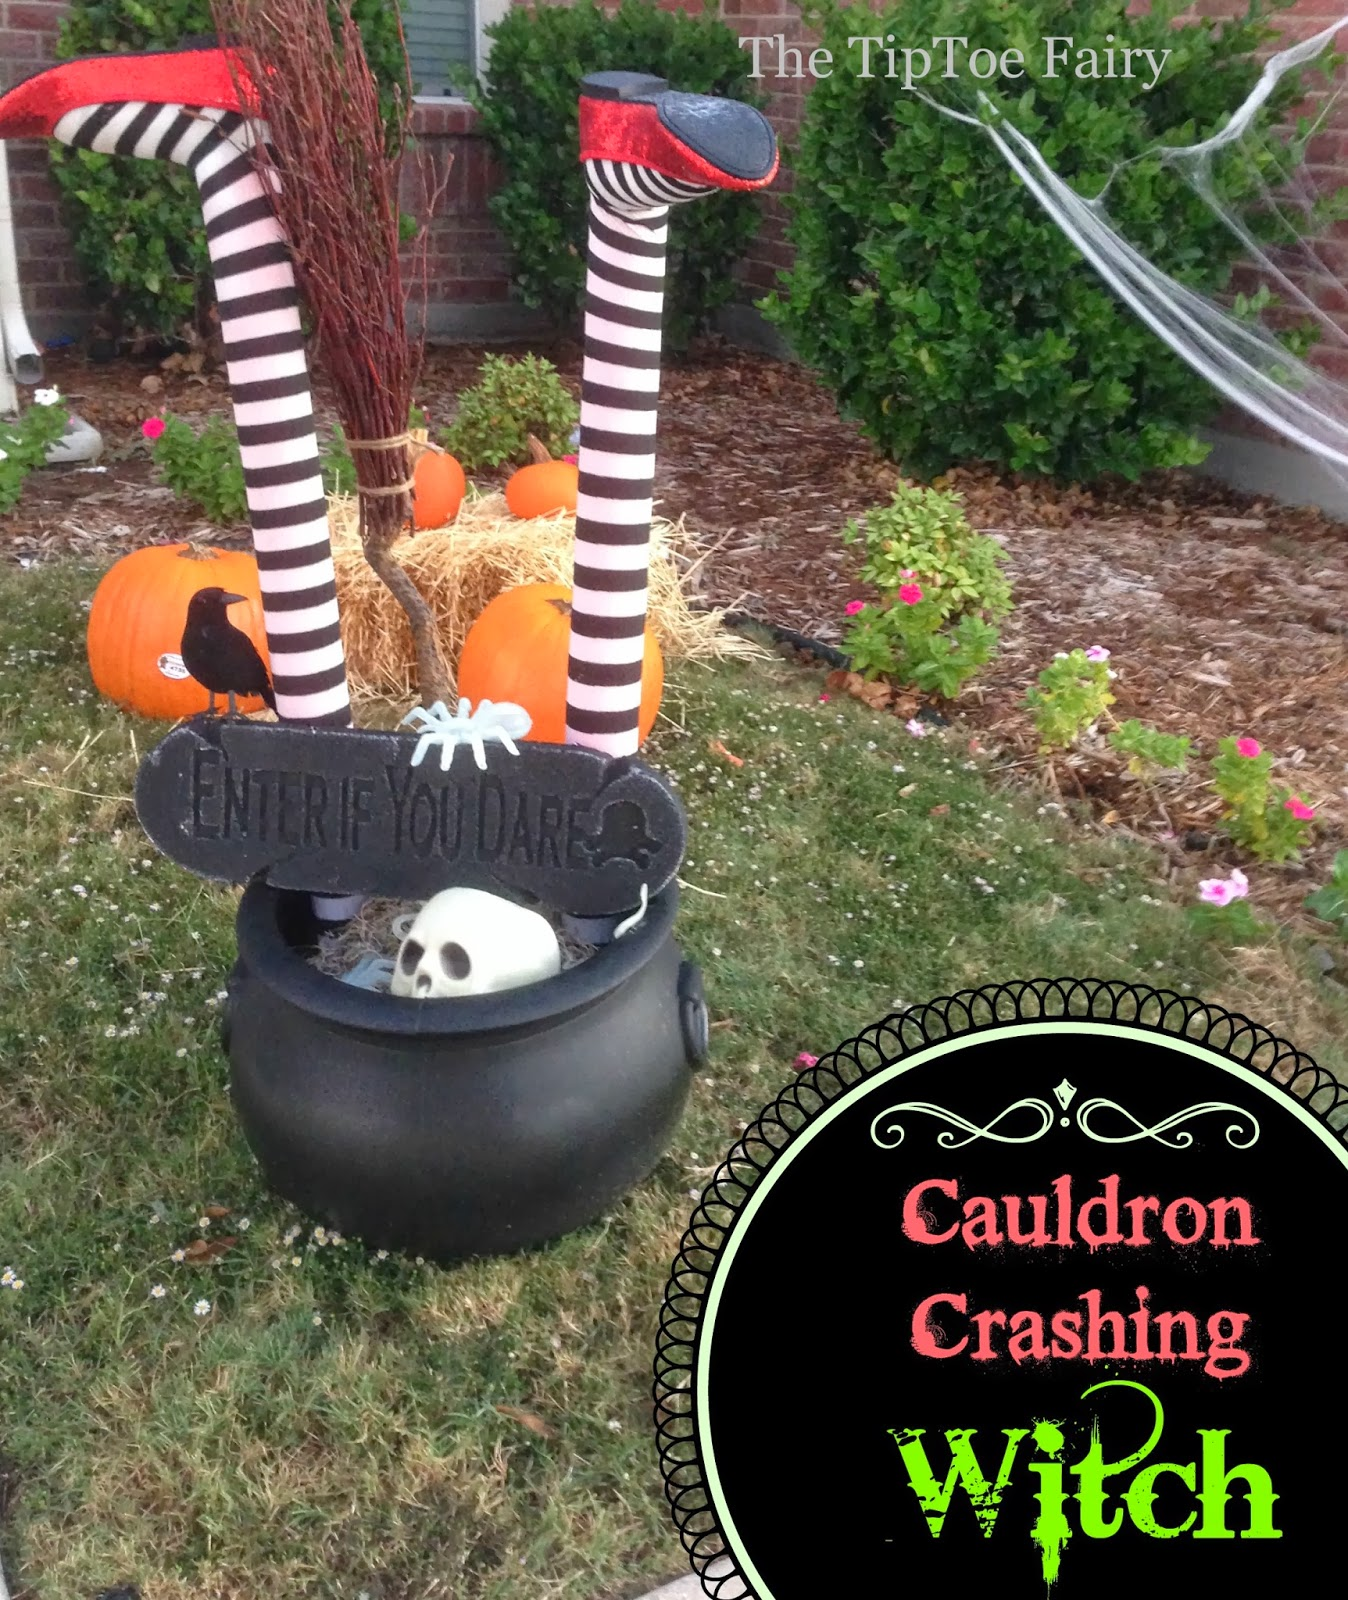 halloween outdoor decorations: it's a witch crashing! | the tiptoe fairy